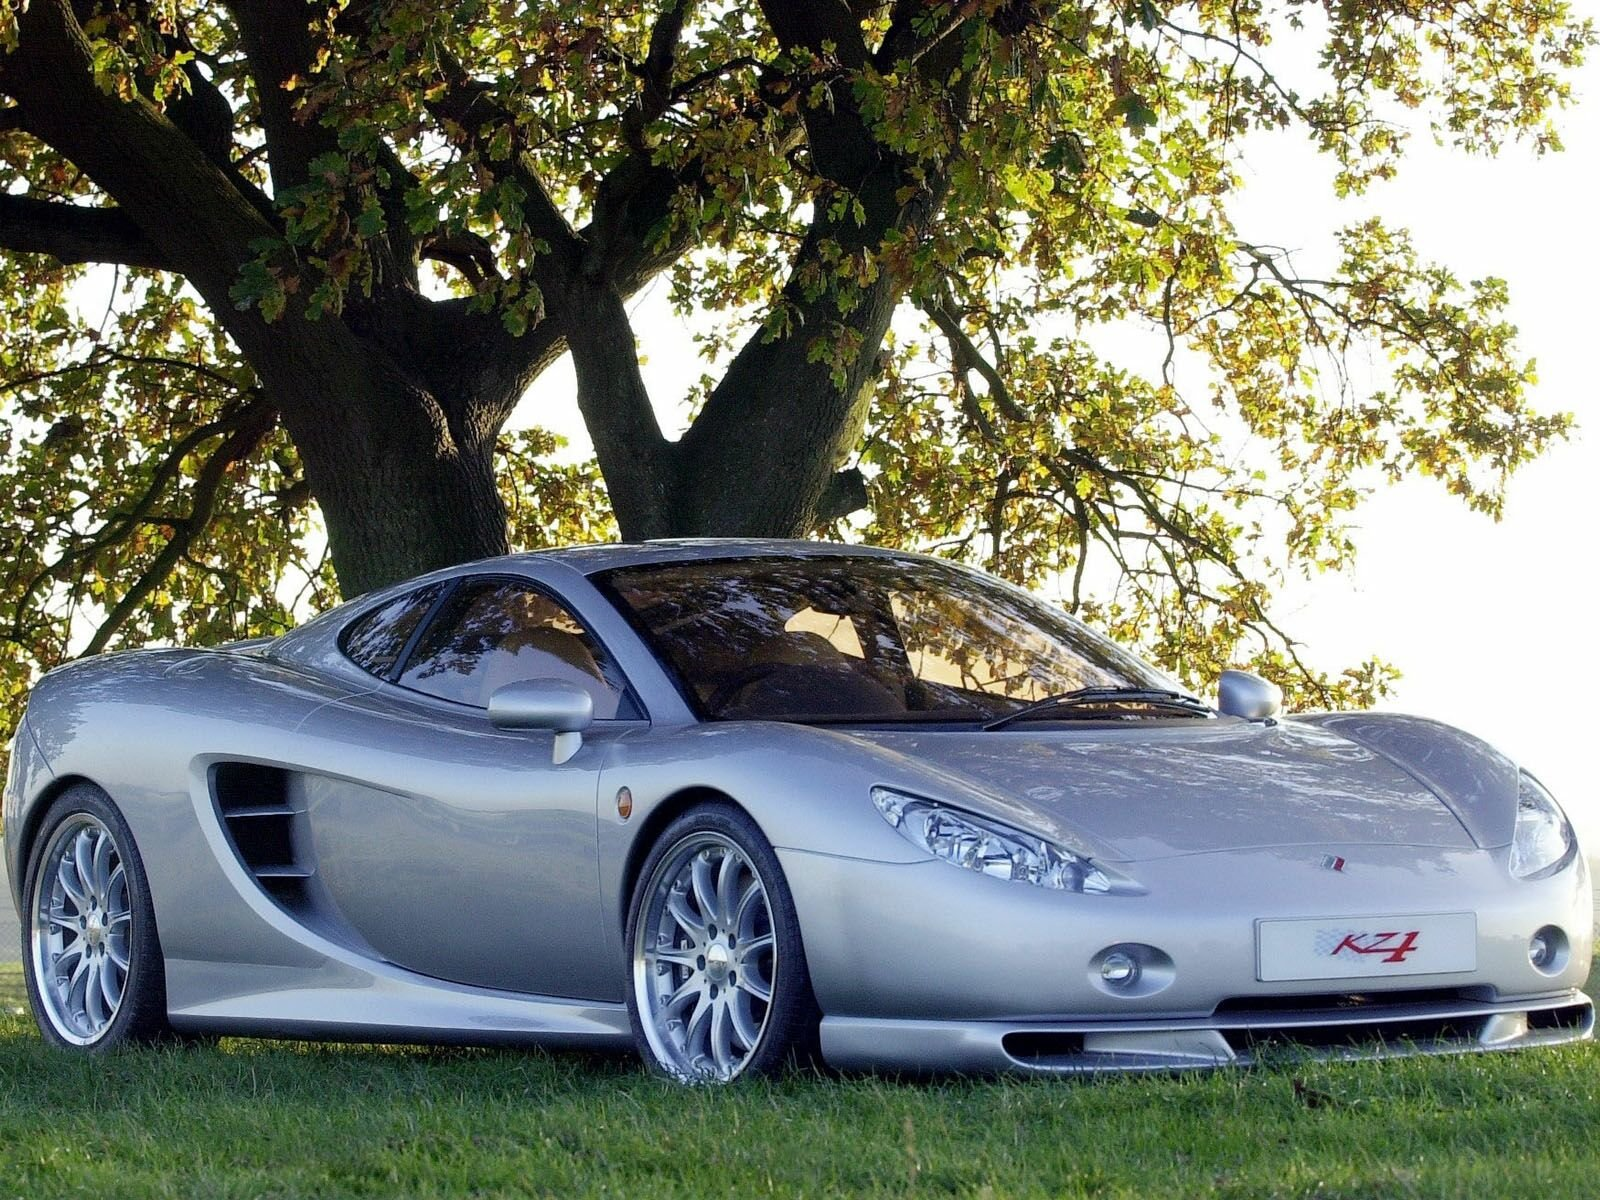 New Ascari Kz1 R The Car Club On This Month